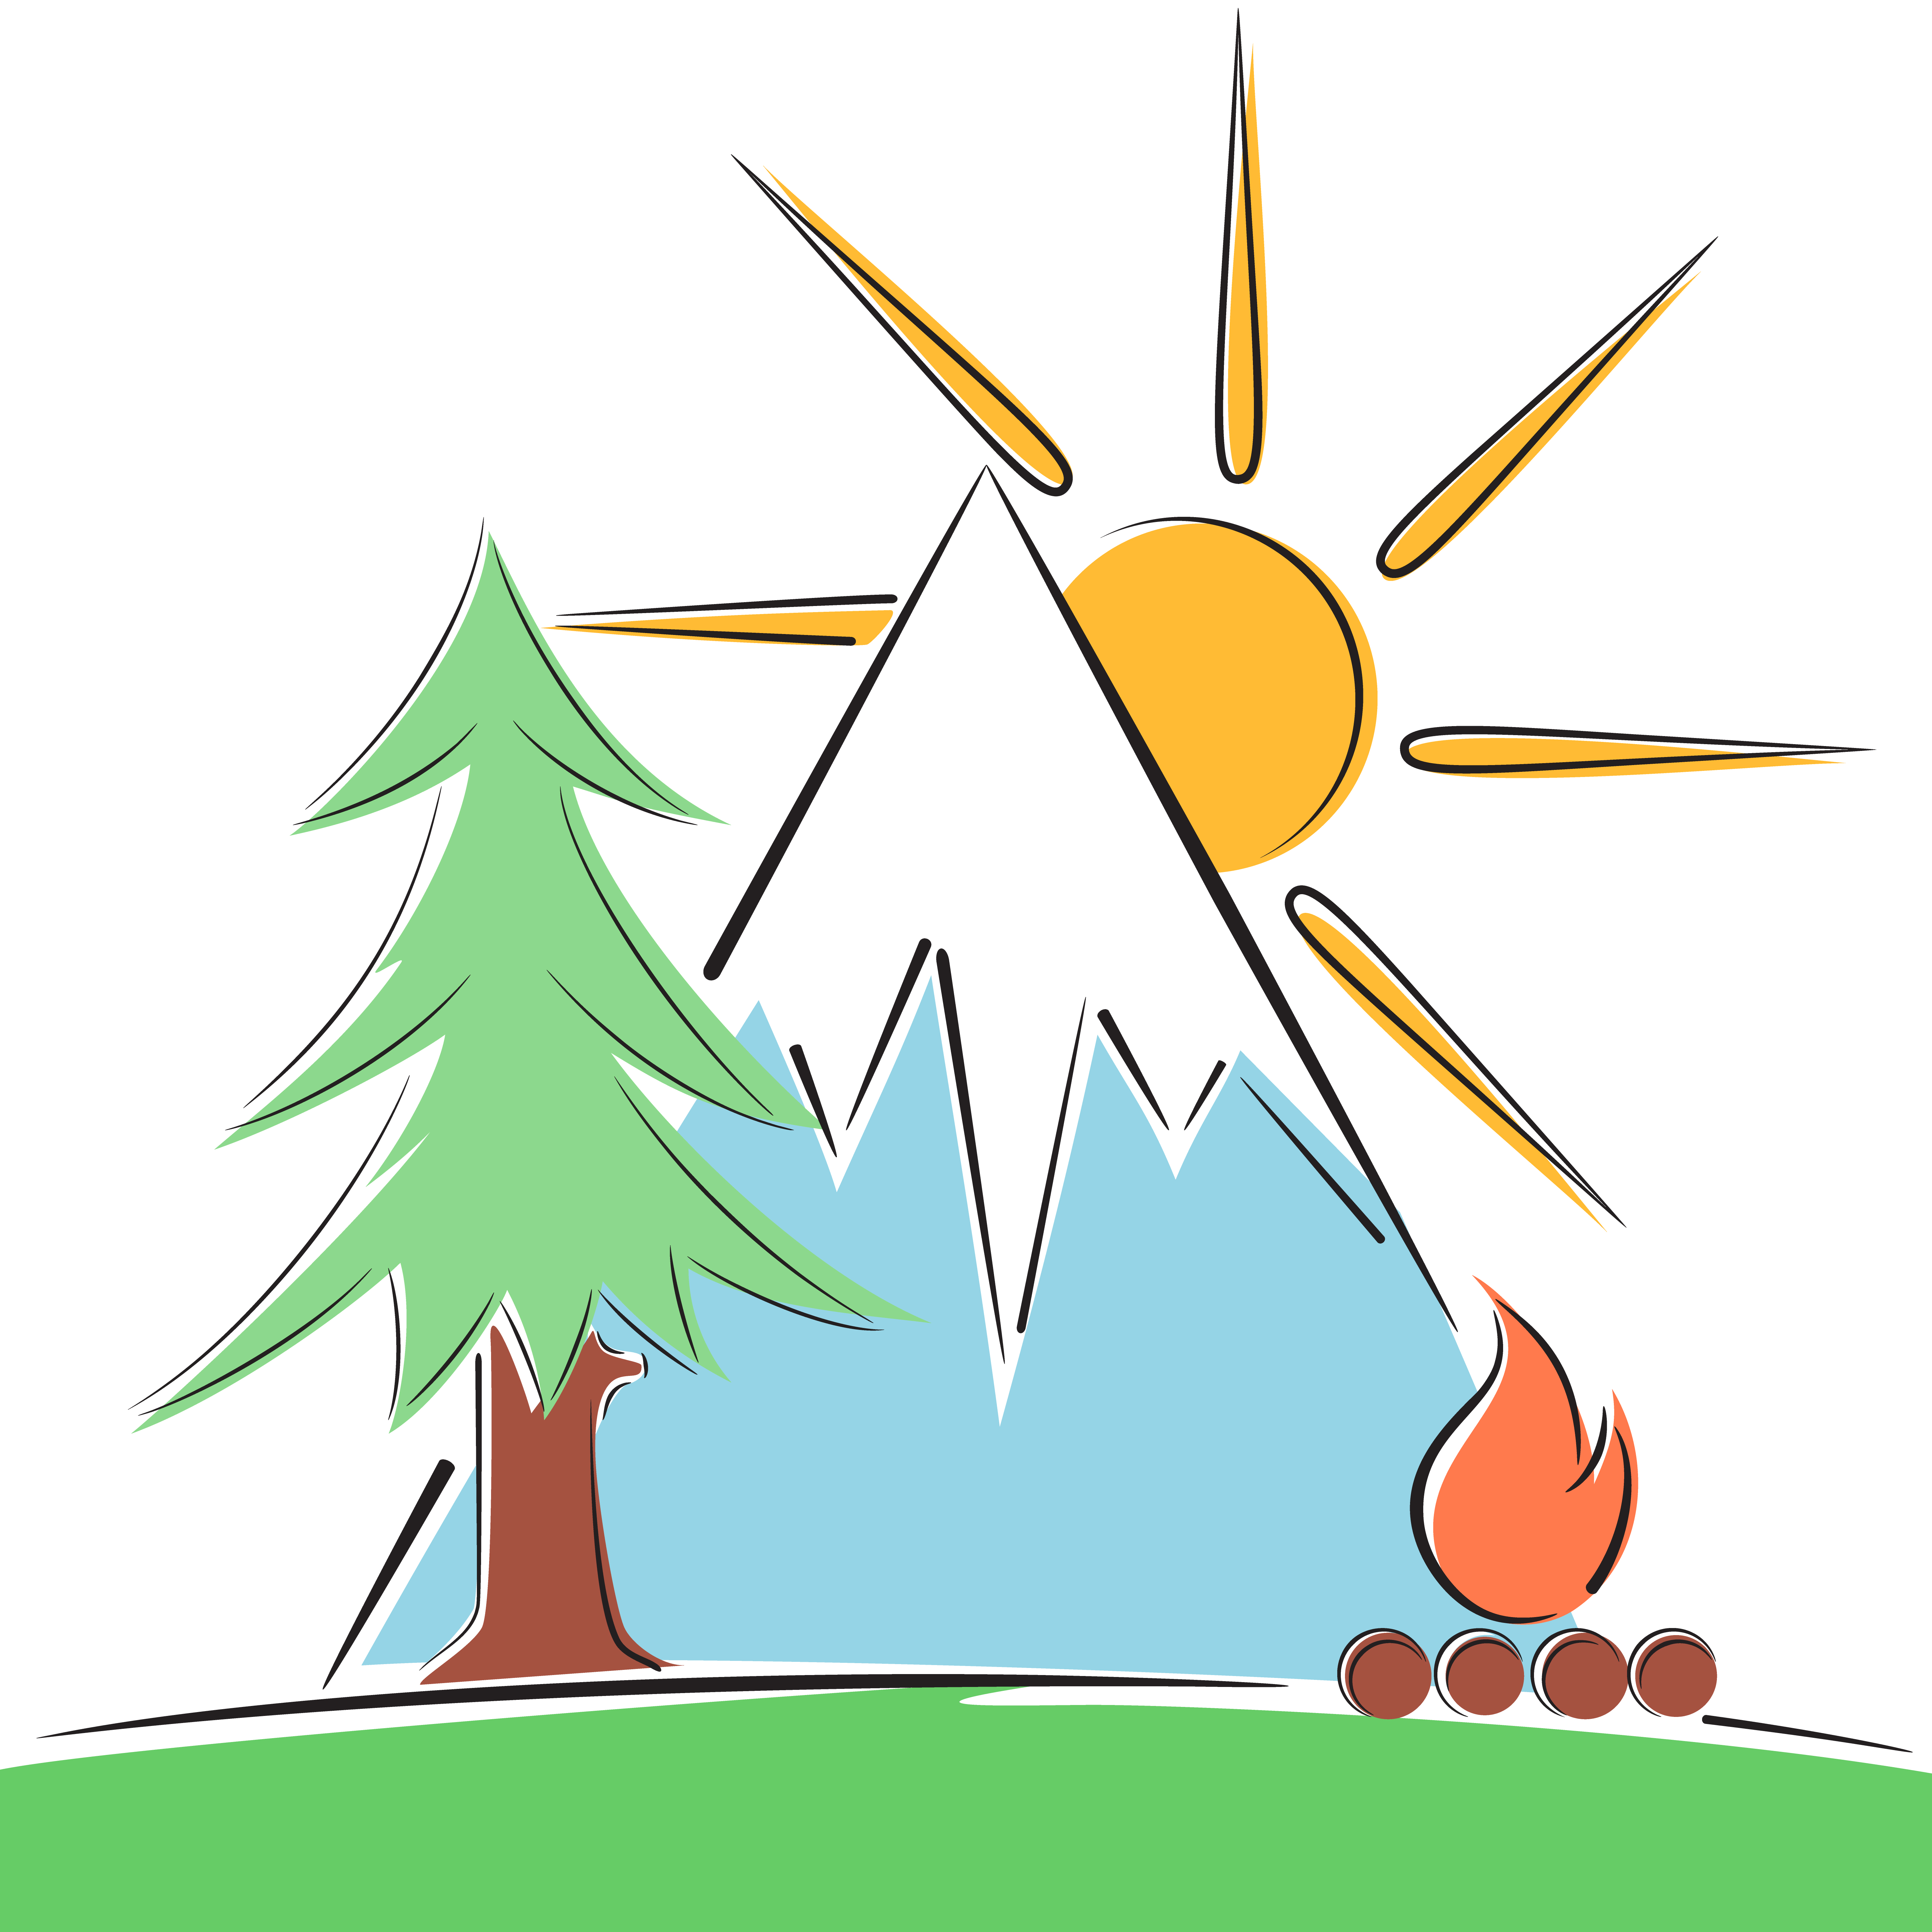 Cartoon Paper Landscape Tree Mountain Fire Illustration Download Free Vectors Clipart Graphics Vector Art Download a free preview or high quality adobe illustrator ai, eps, pdf and high resolution jpeg versions. vecteezy